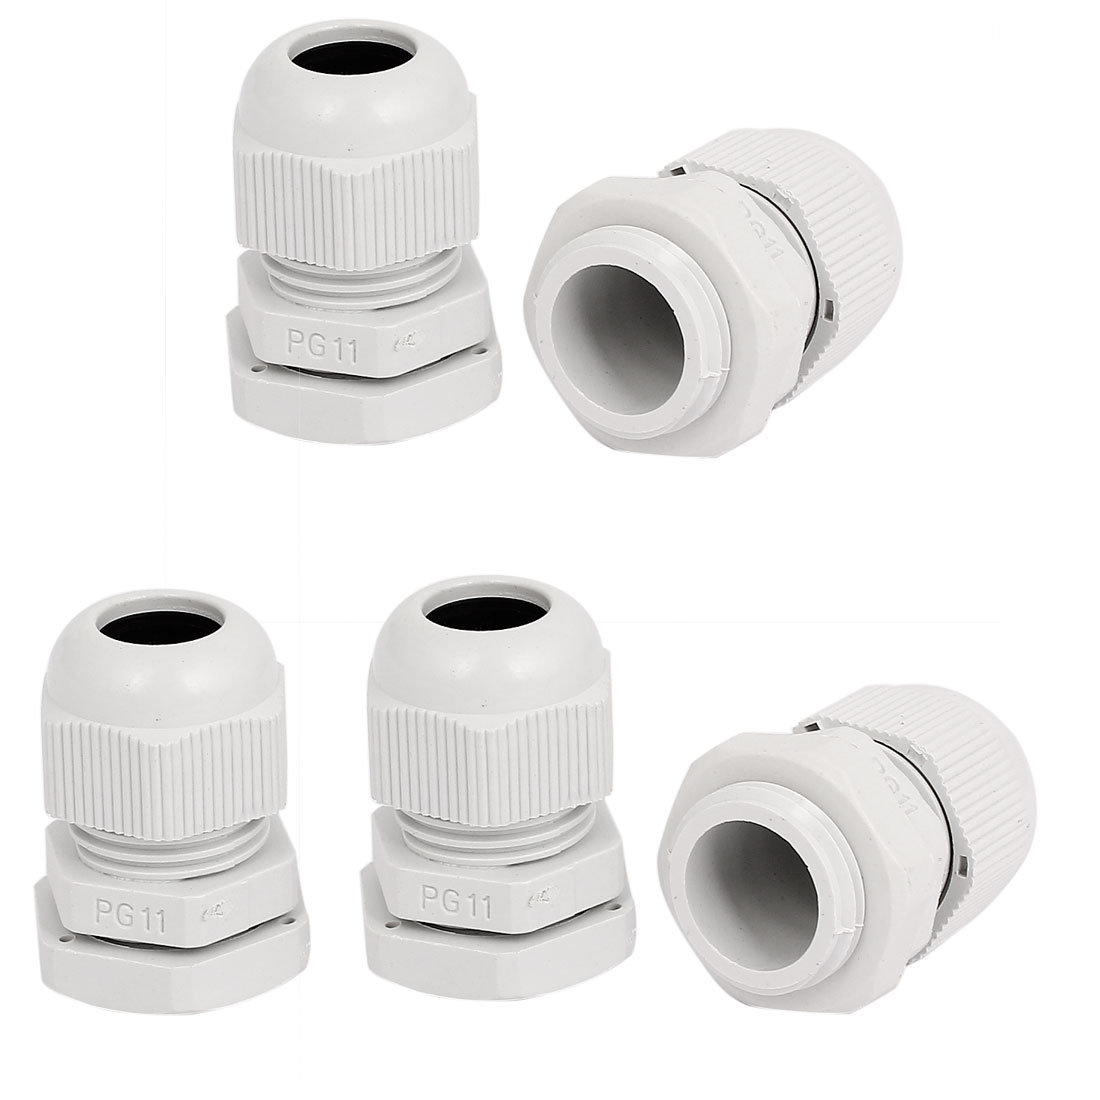 5pcs White Plastic PG11 5-10mm 18.2mm Male Thread Dia Waterproof Cable Glands Joints Fastener